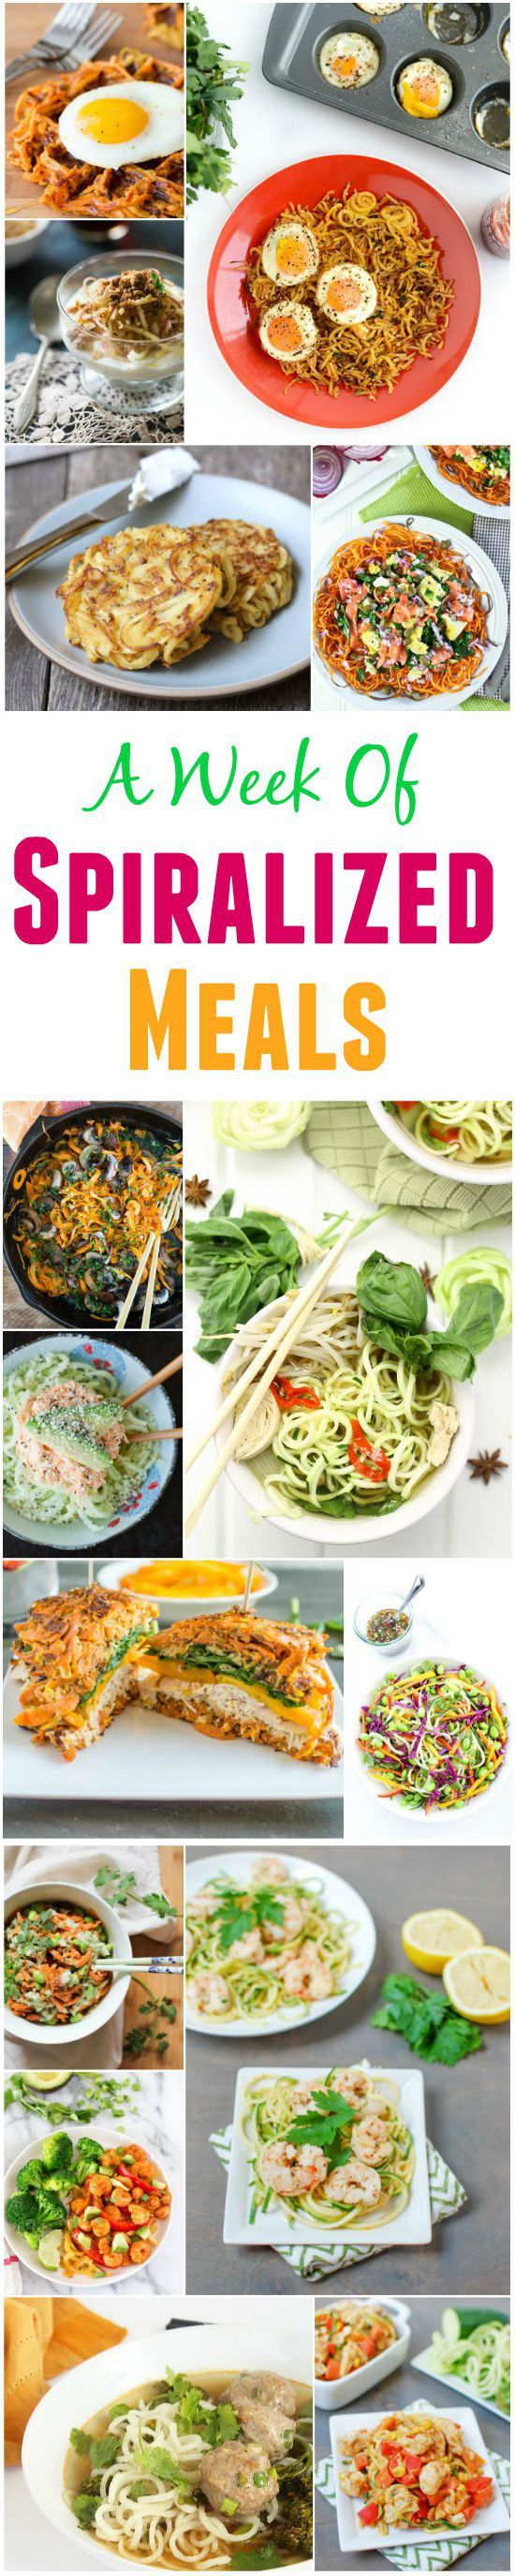 A Week of Spiralized Meals. Recipes for breakfast, lunch and dinner!